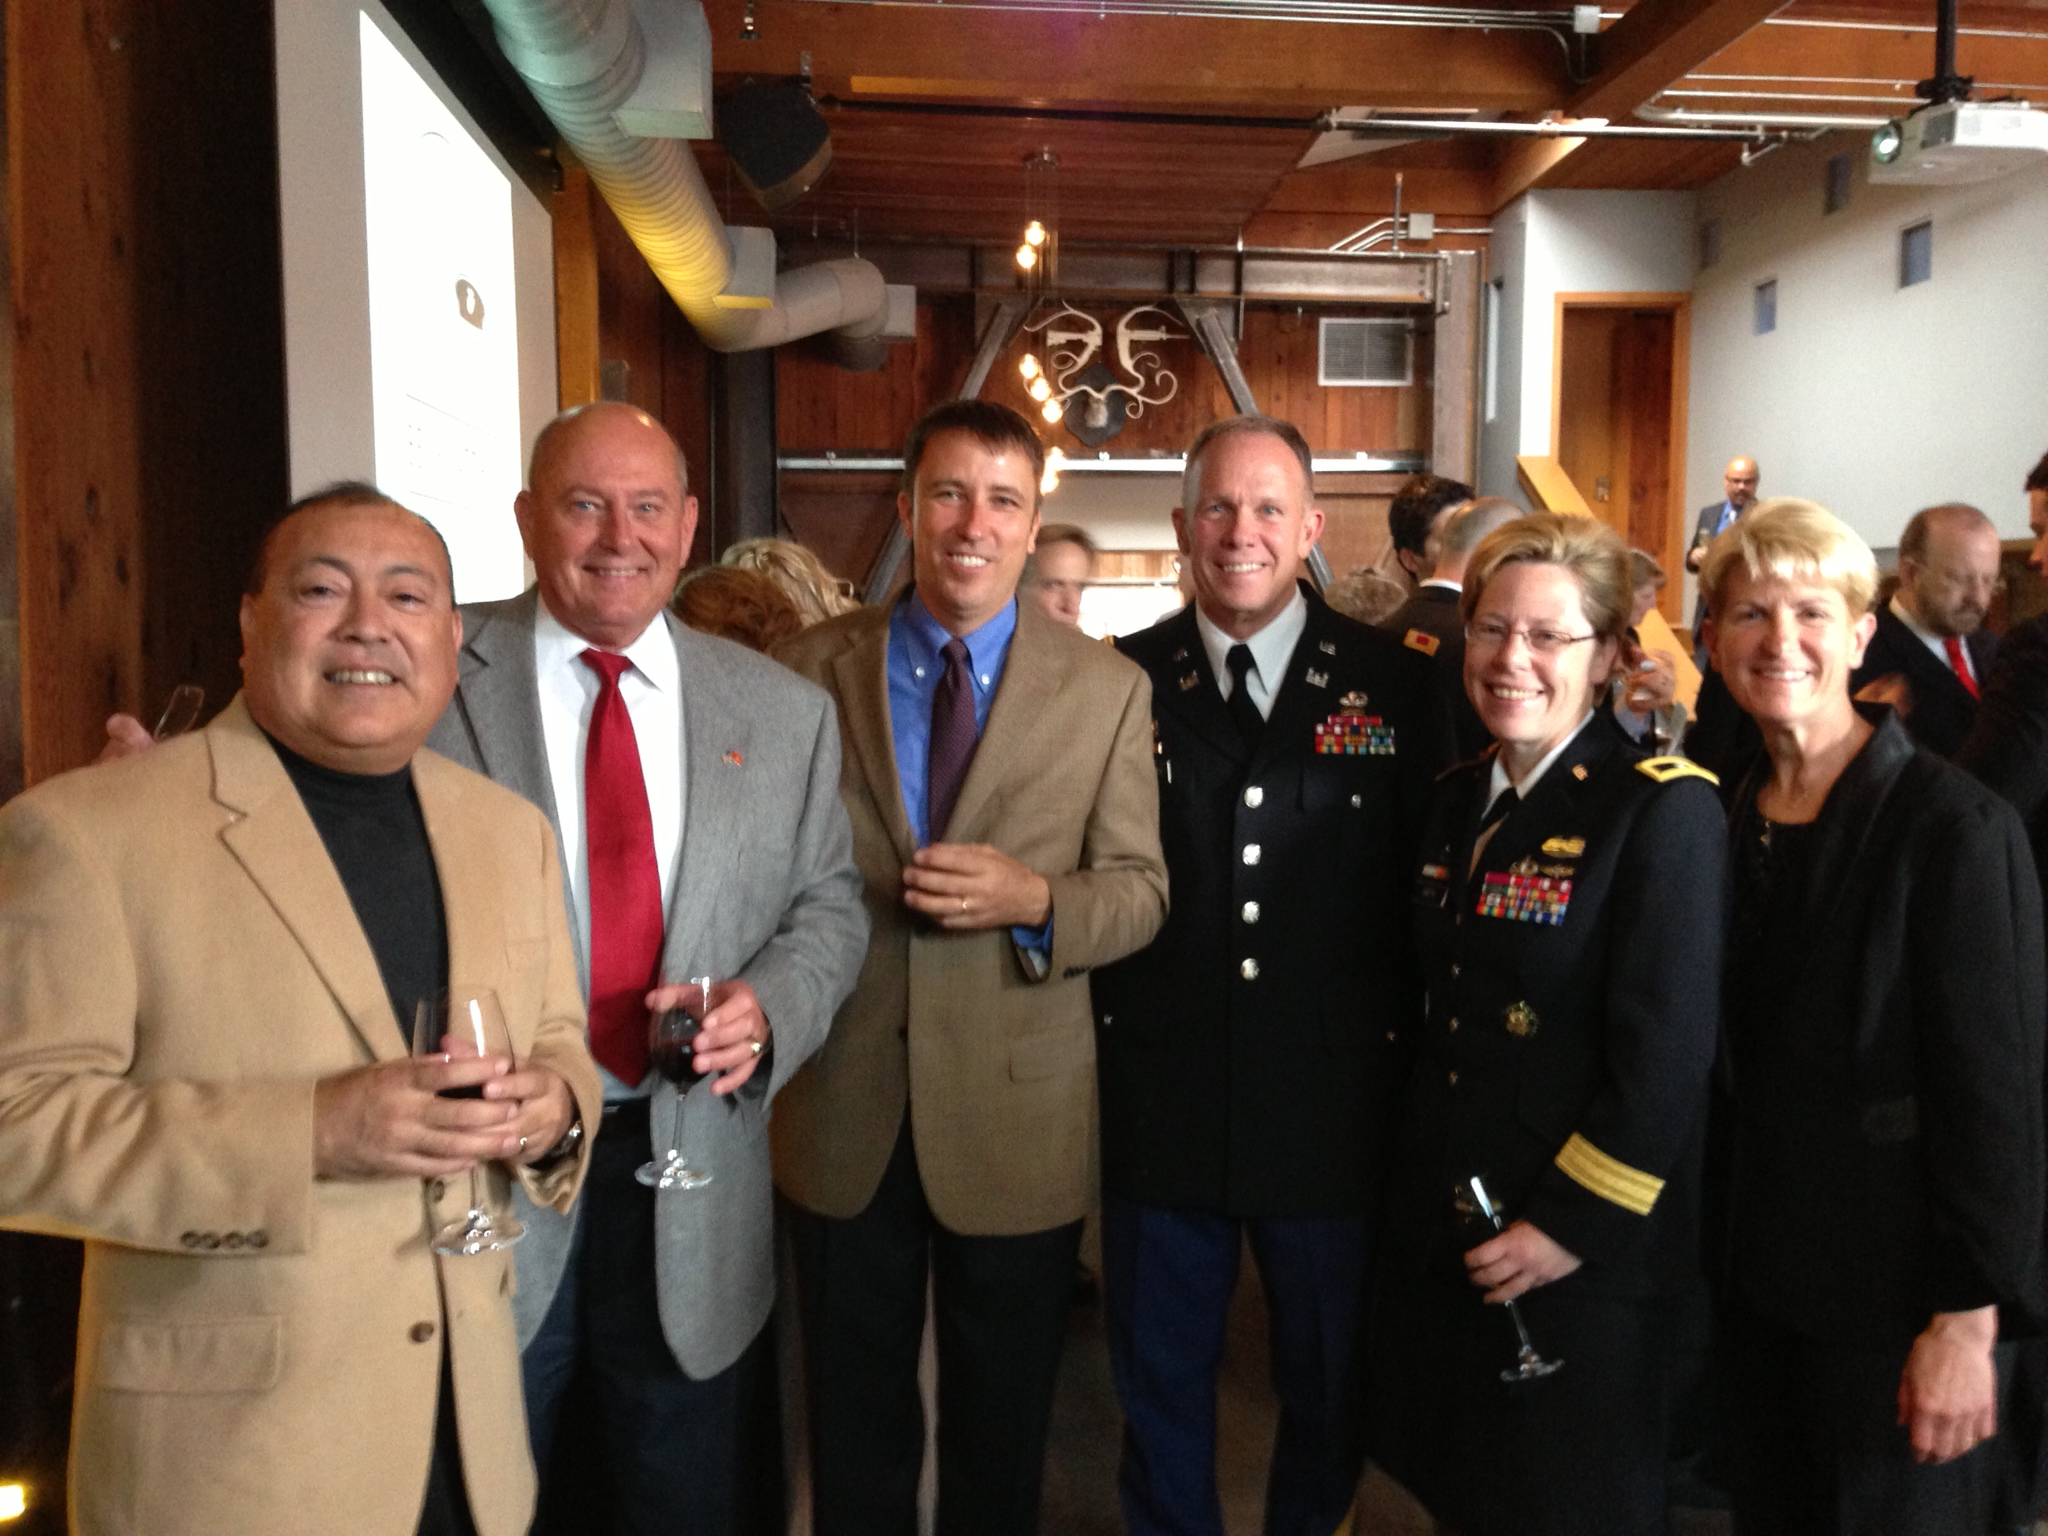 Art and (Colonel) Tom, Stephen and (Colonel) Stewart, (General) Tammy and Tracey